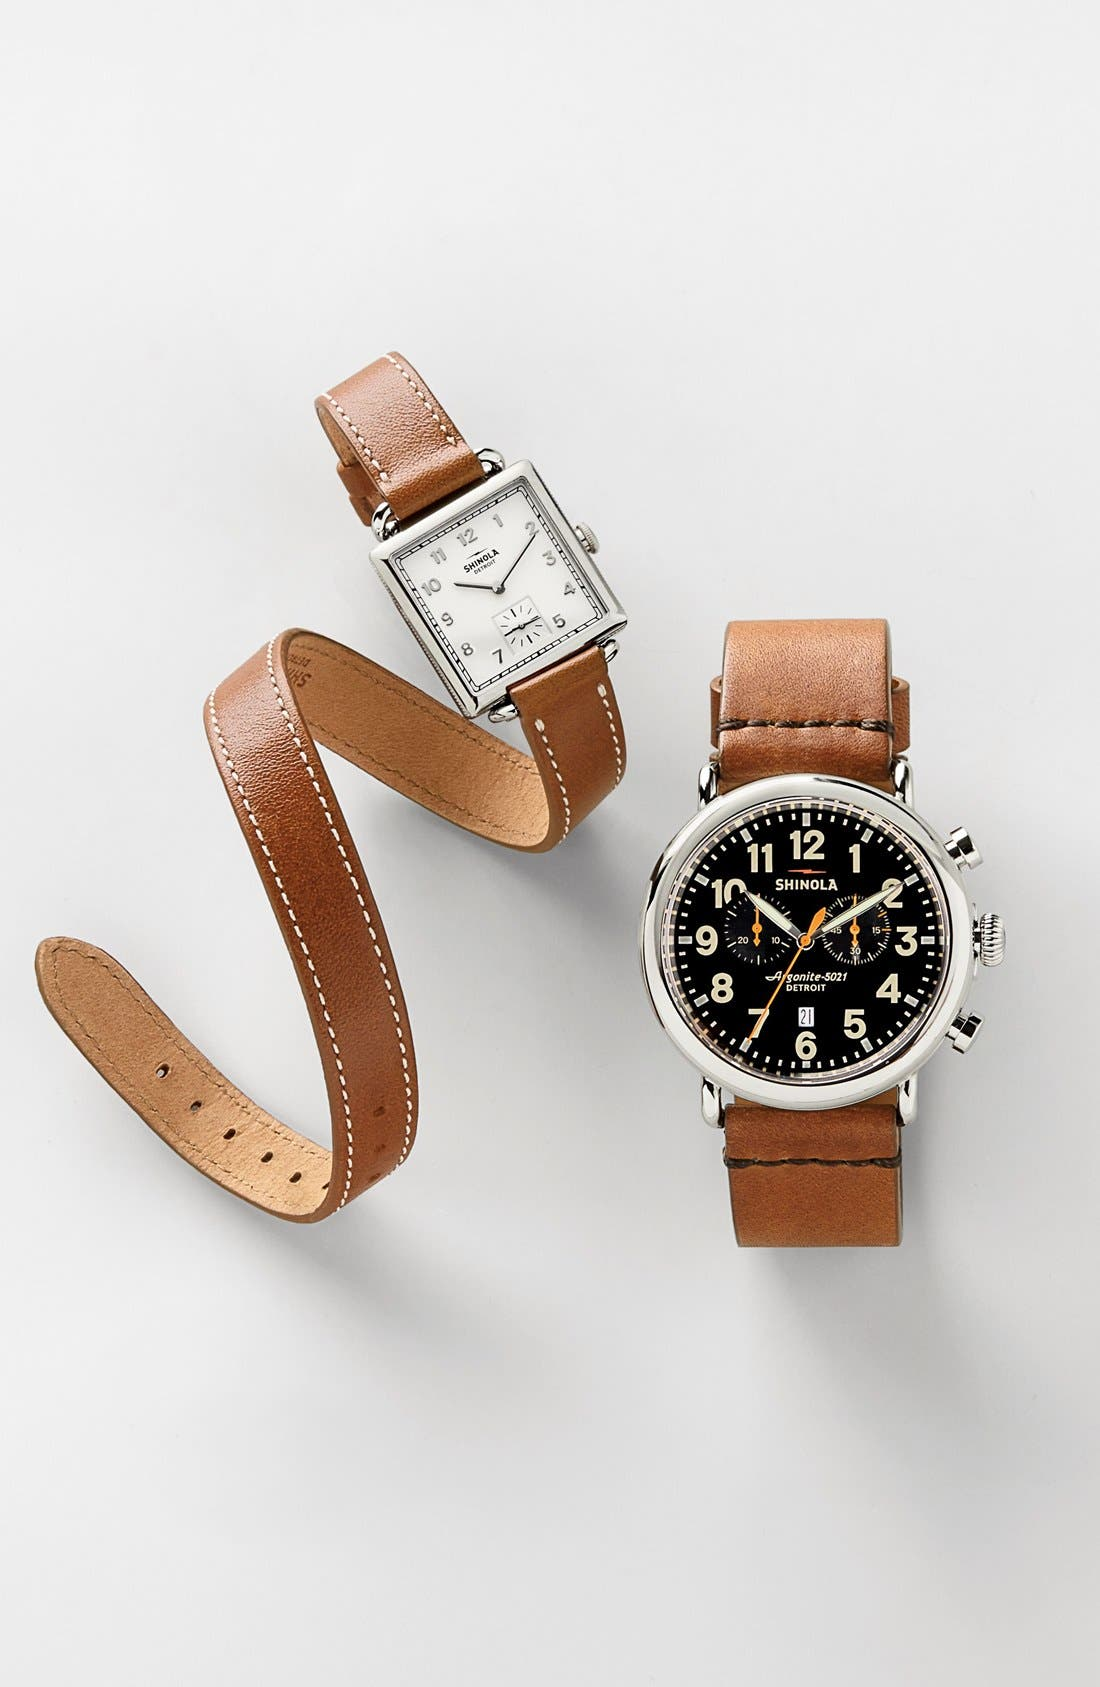 SHINOLA, Cass Leather Strap Watch, 28mm, Alternate thumbnail 5, color, GREY/ NAVY MOTHER OF PEARL